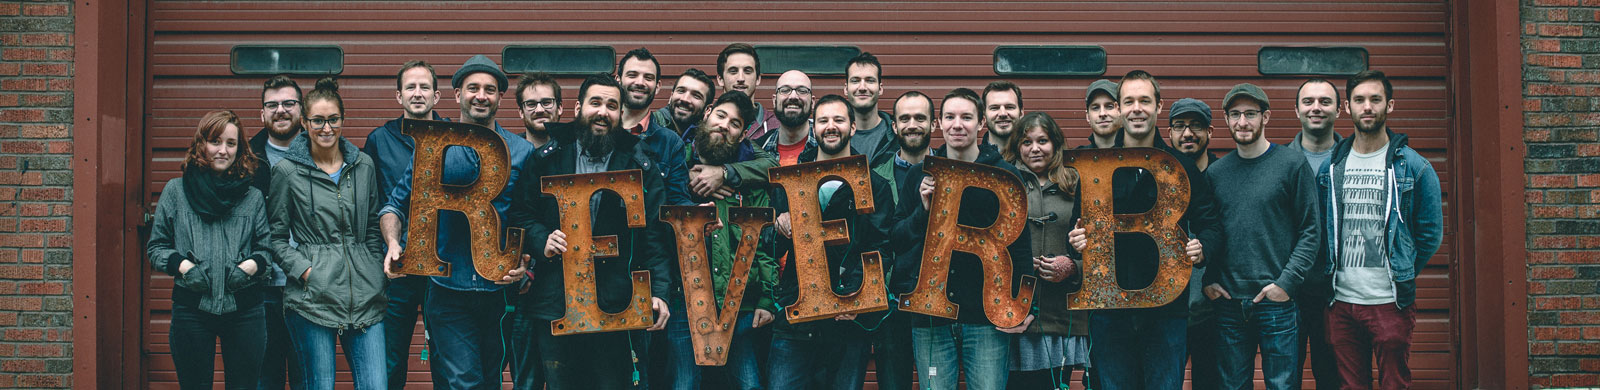 Reverb team photo